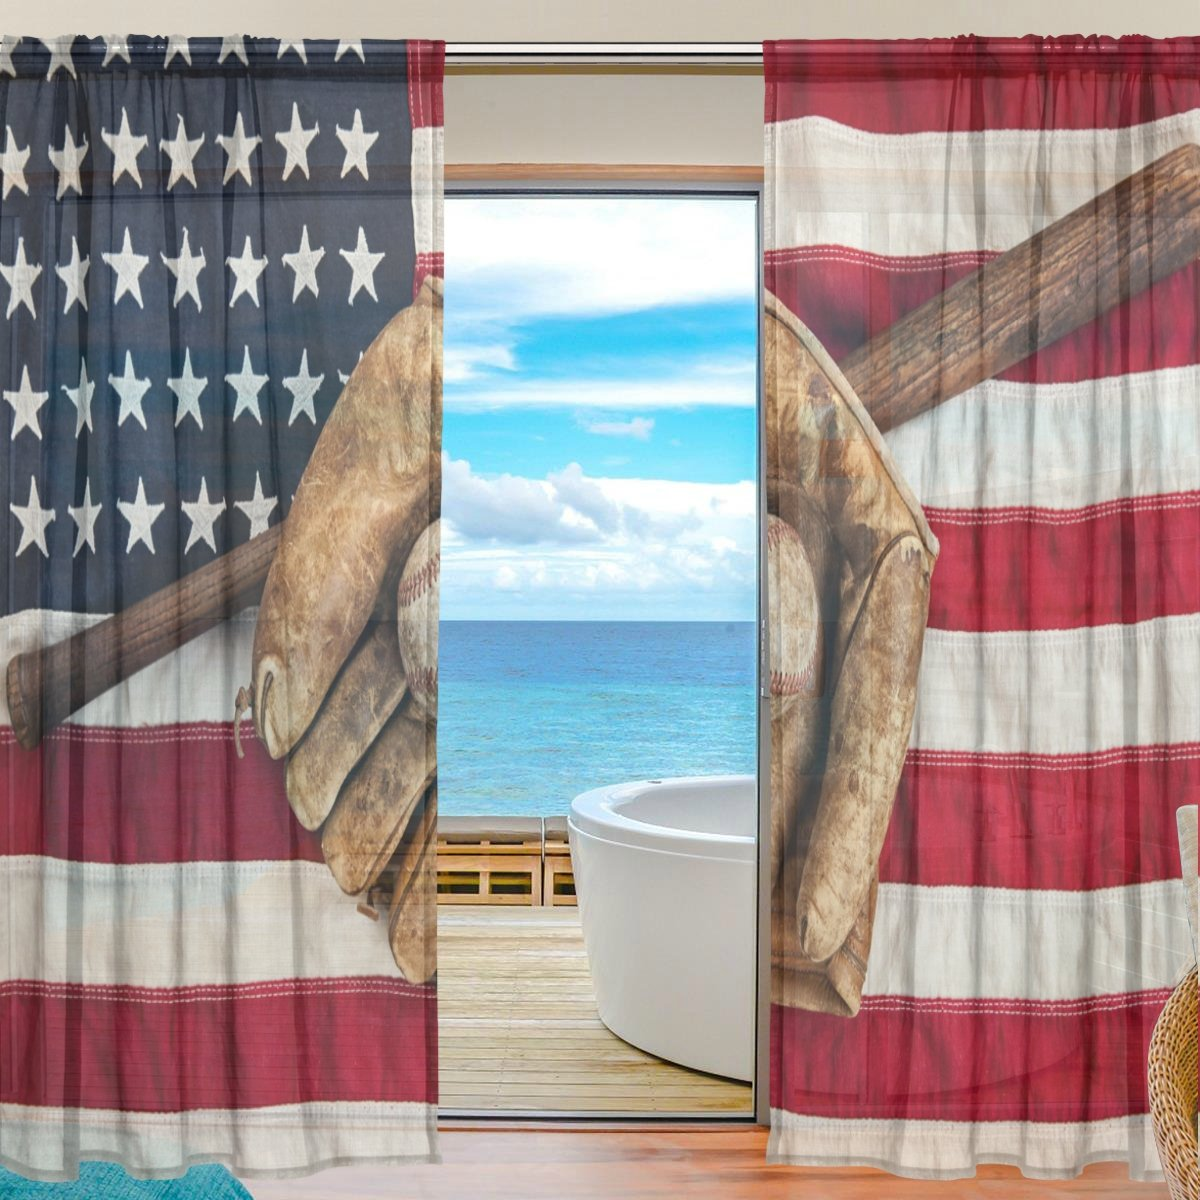 SEULIFE Window Sheer Curtain, American USA Flag Baseball Voile Curtain Drapes for Door Kitchen Living Room Bedroom 55x78 inches 2 Panels g4073884p113c127s169